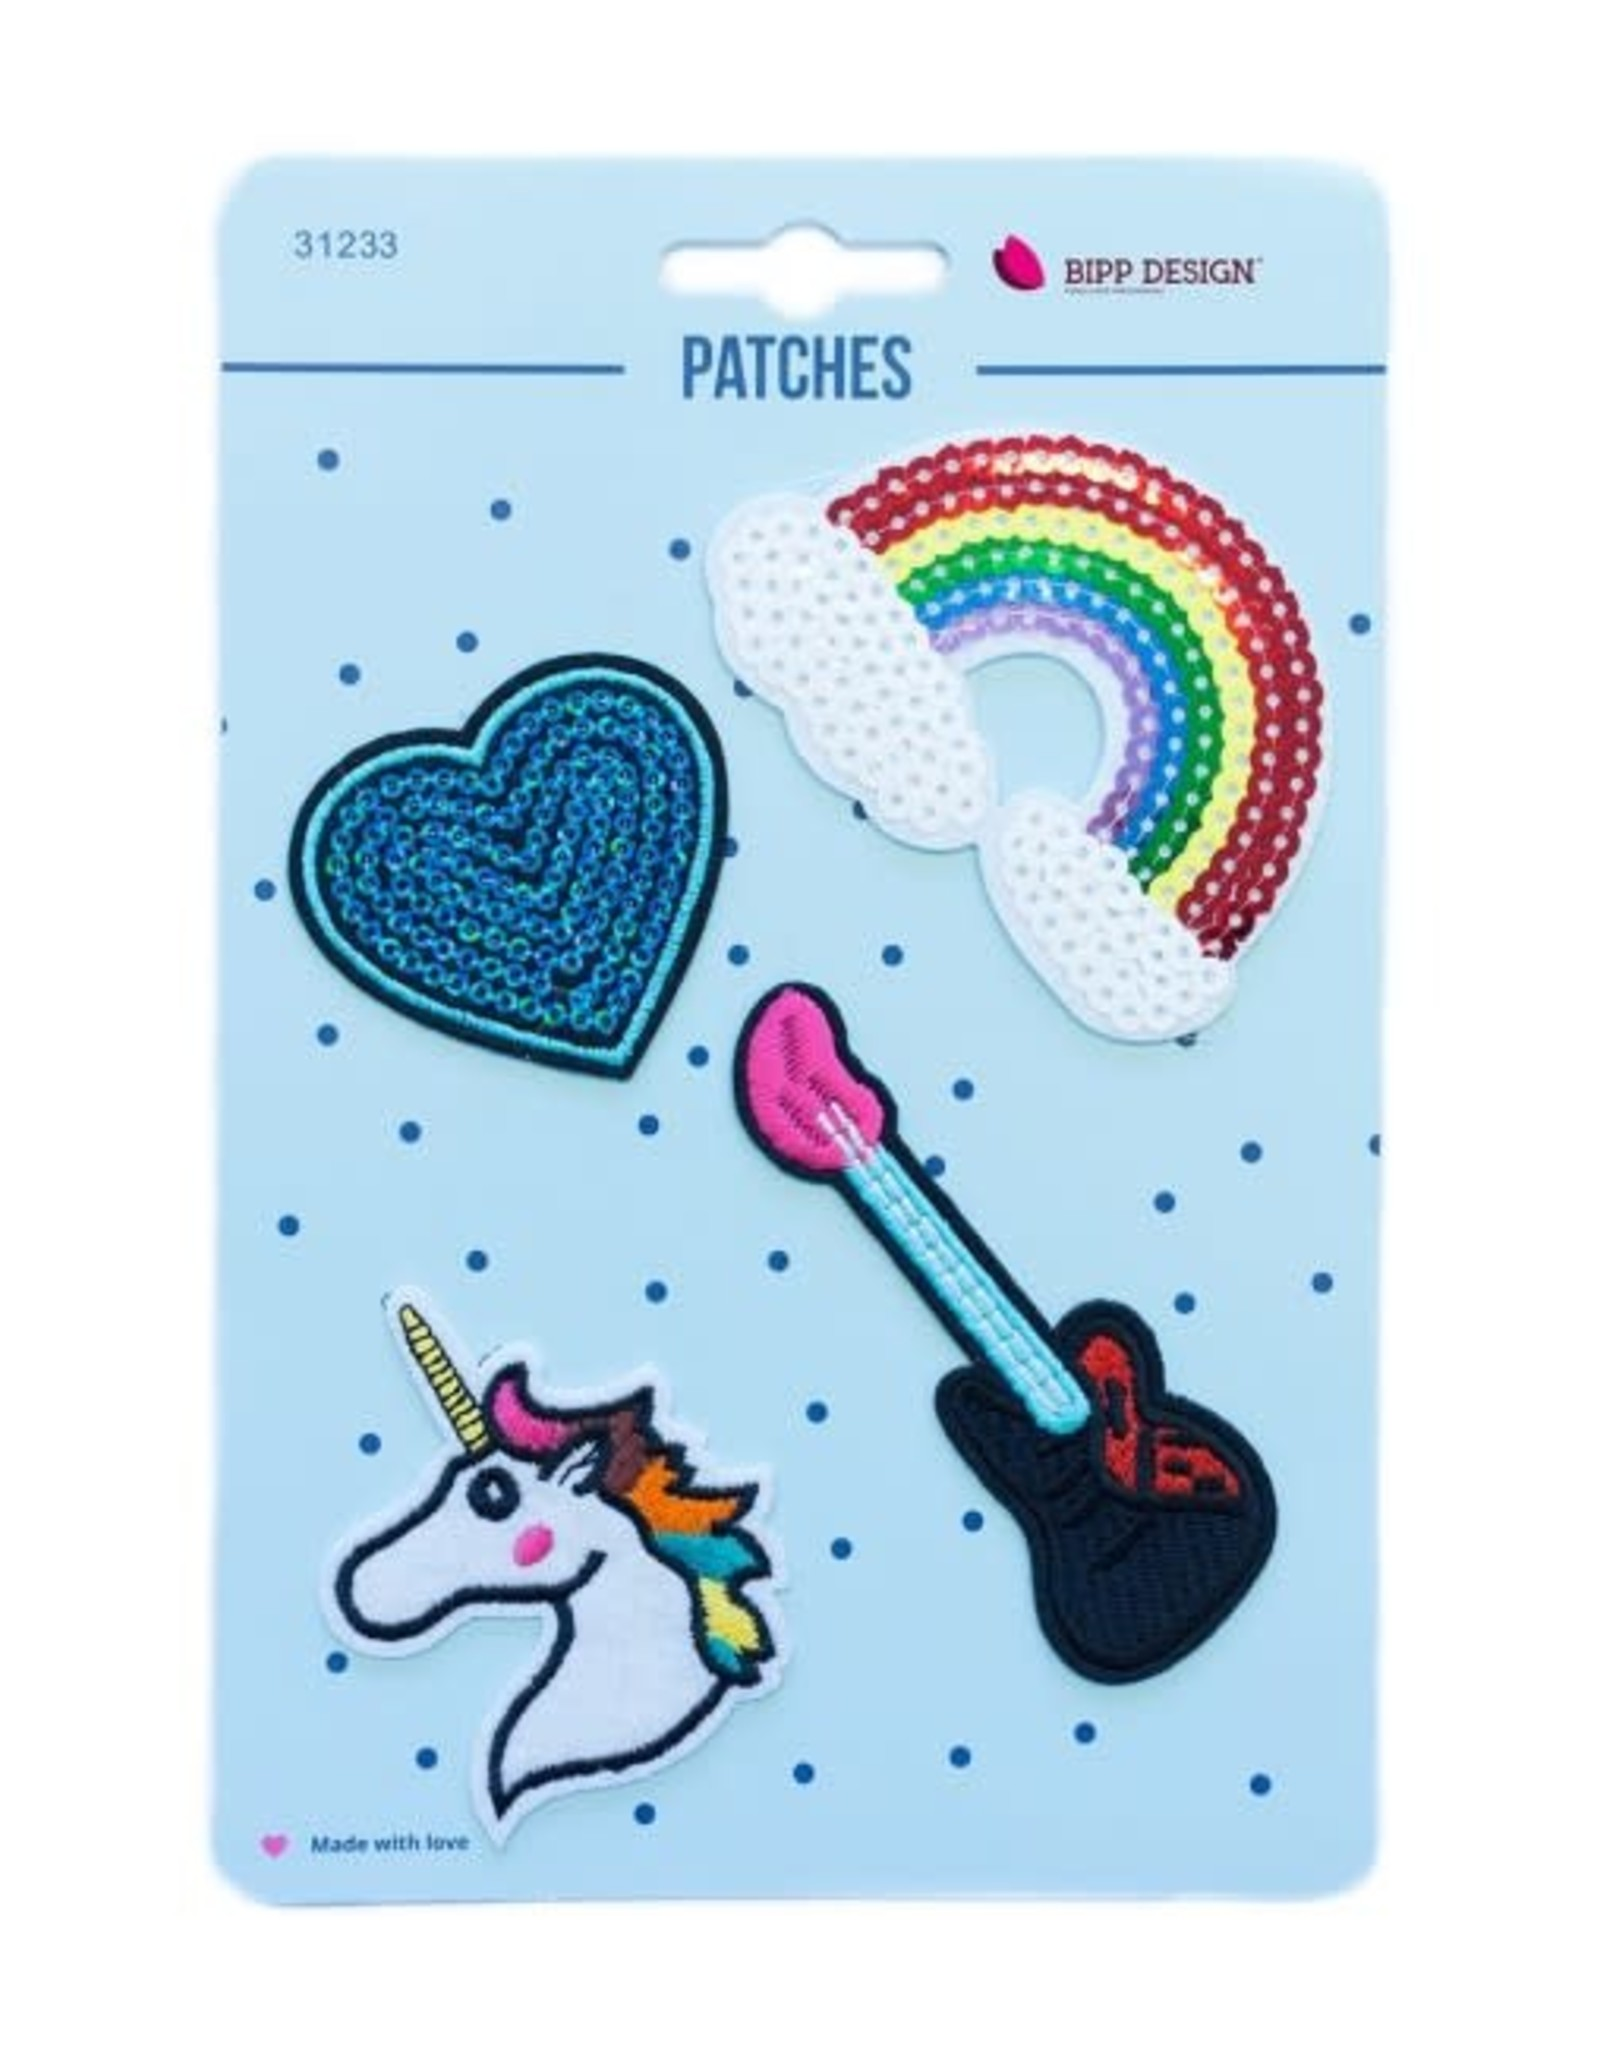 Bipp Design Patches - Rainbow Guitar